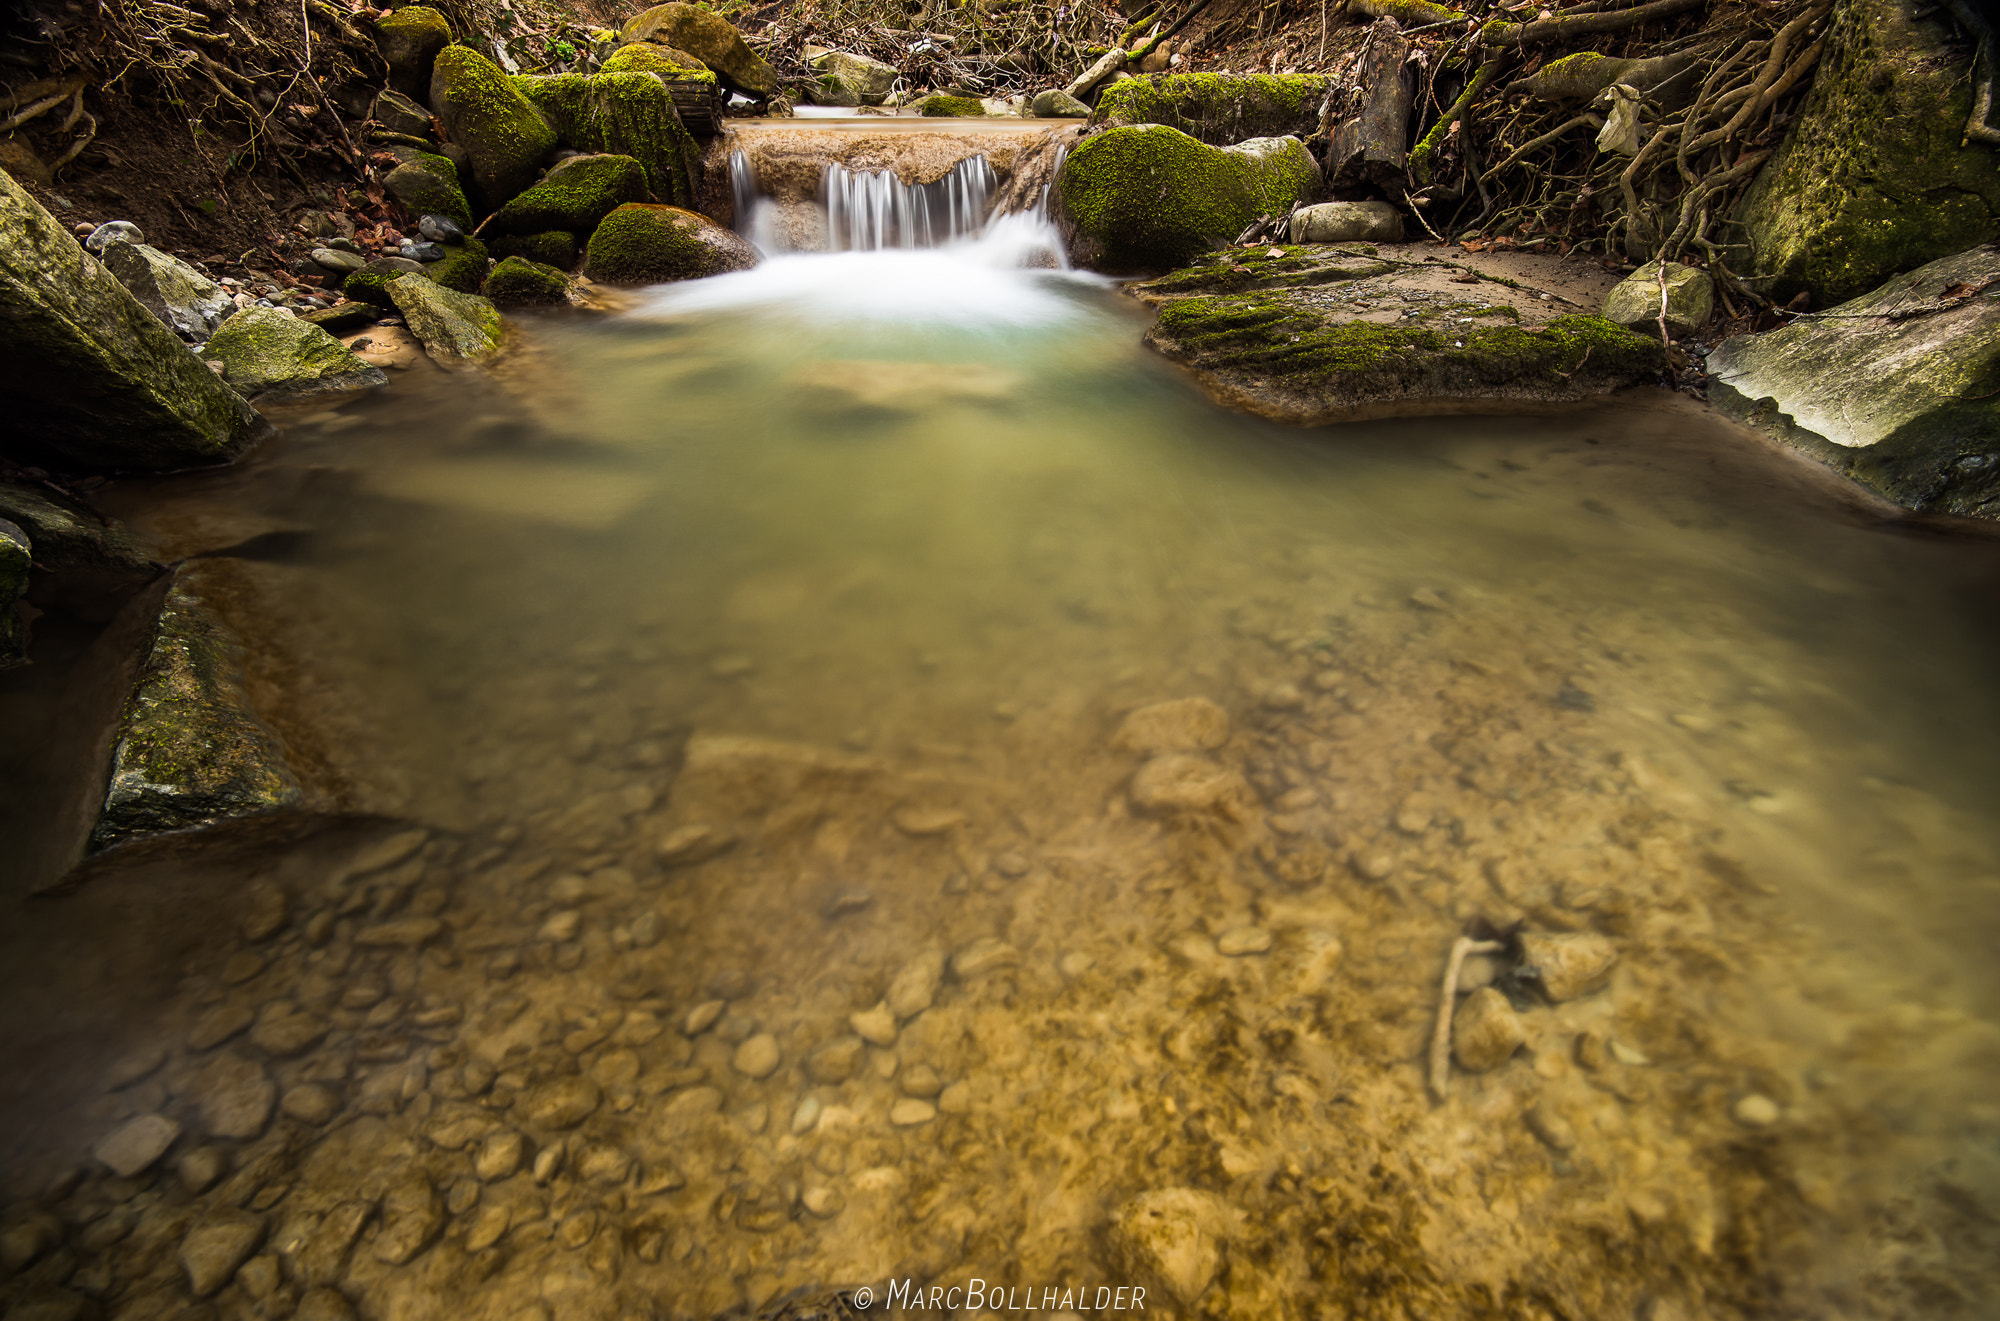 Photograph Little little waterfall by Marc Bollhalder on 500px